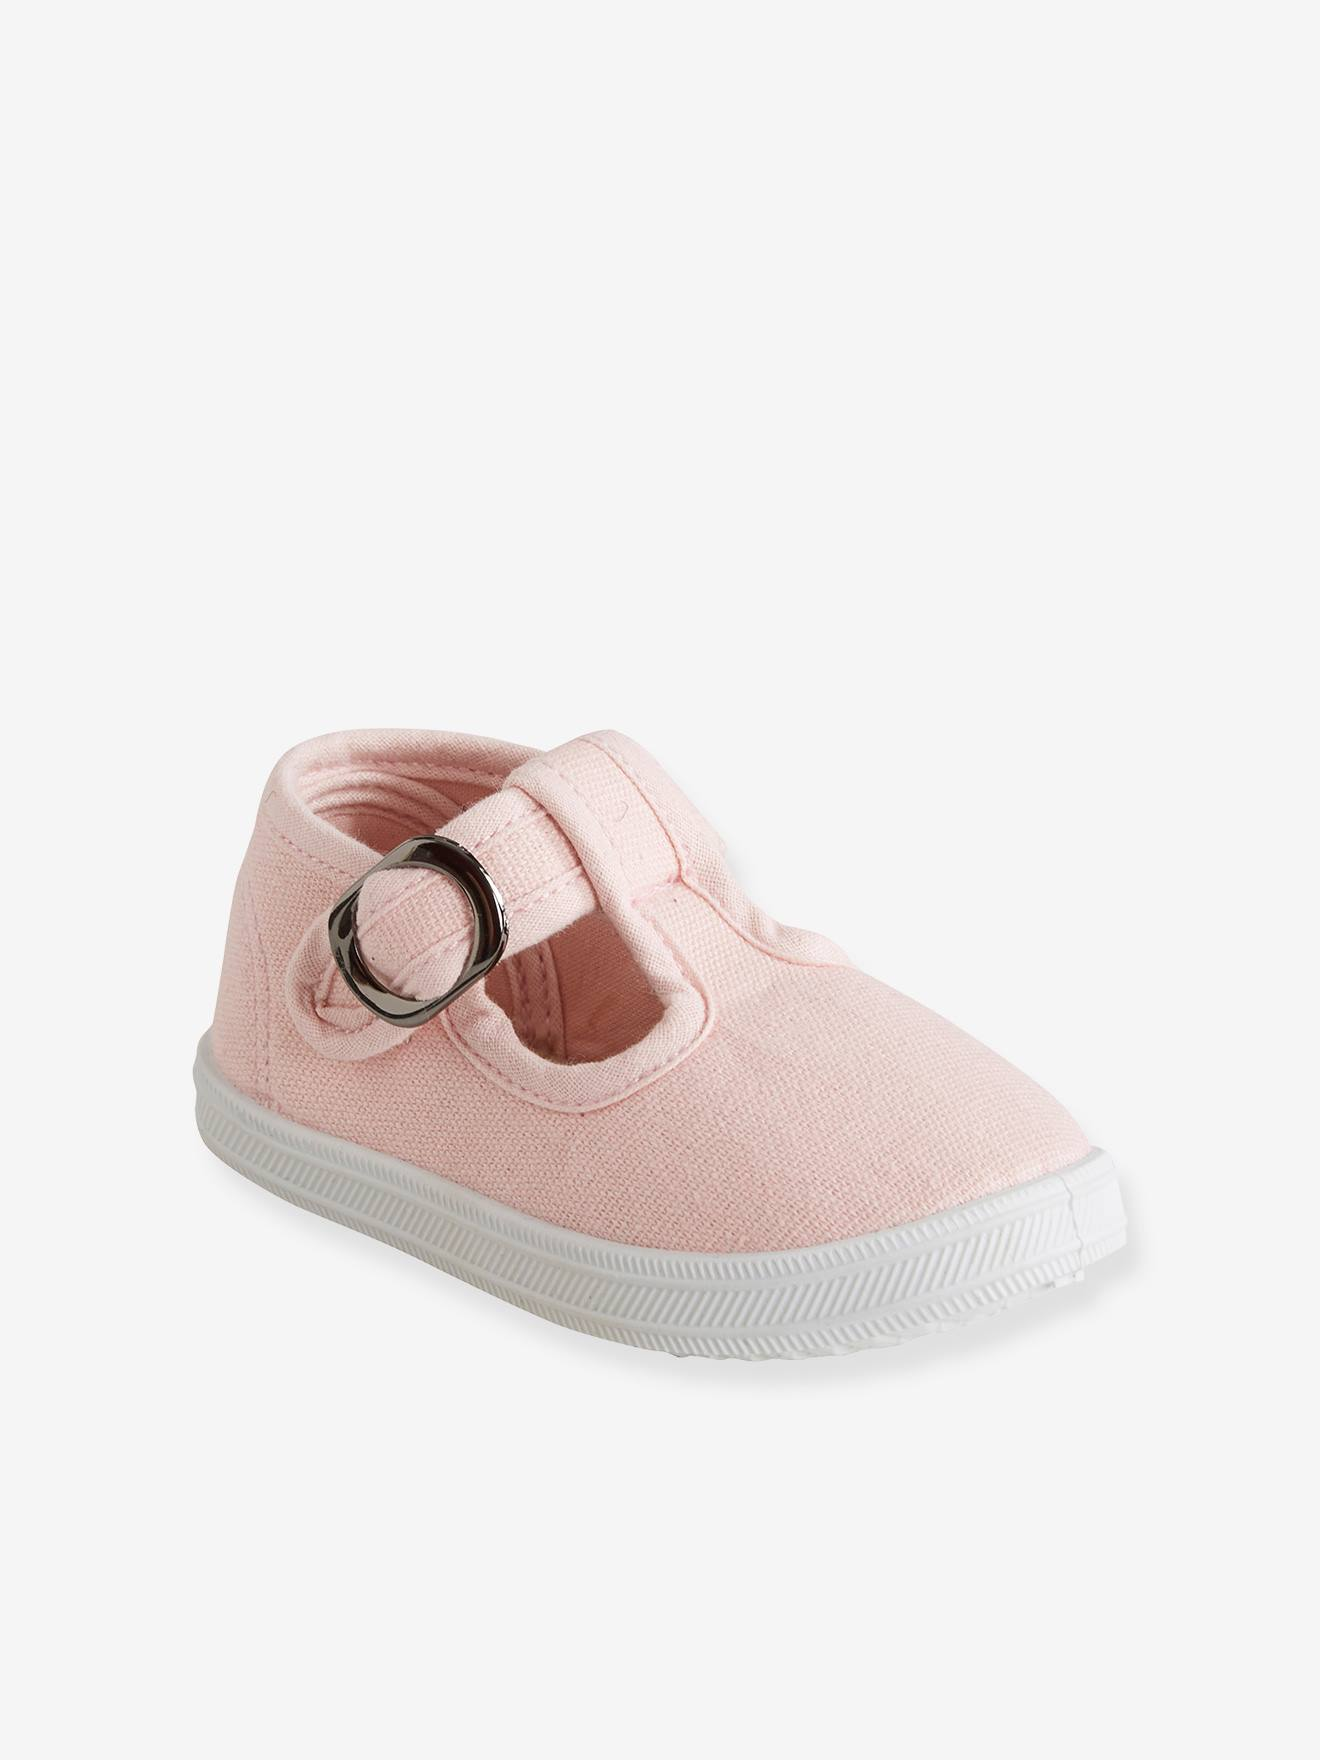 T Strap Sandals for Baby Girls, Designed for First Steps pink light solid, Shoes